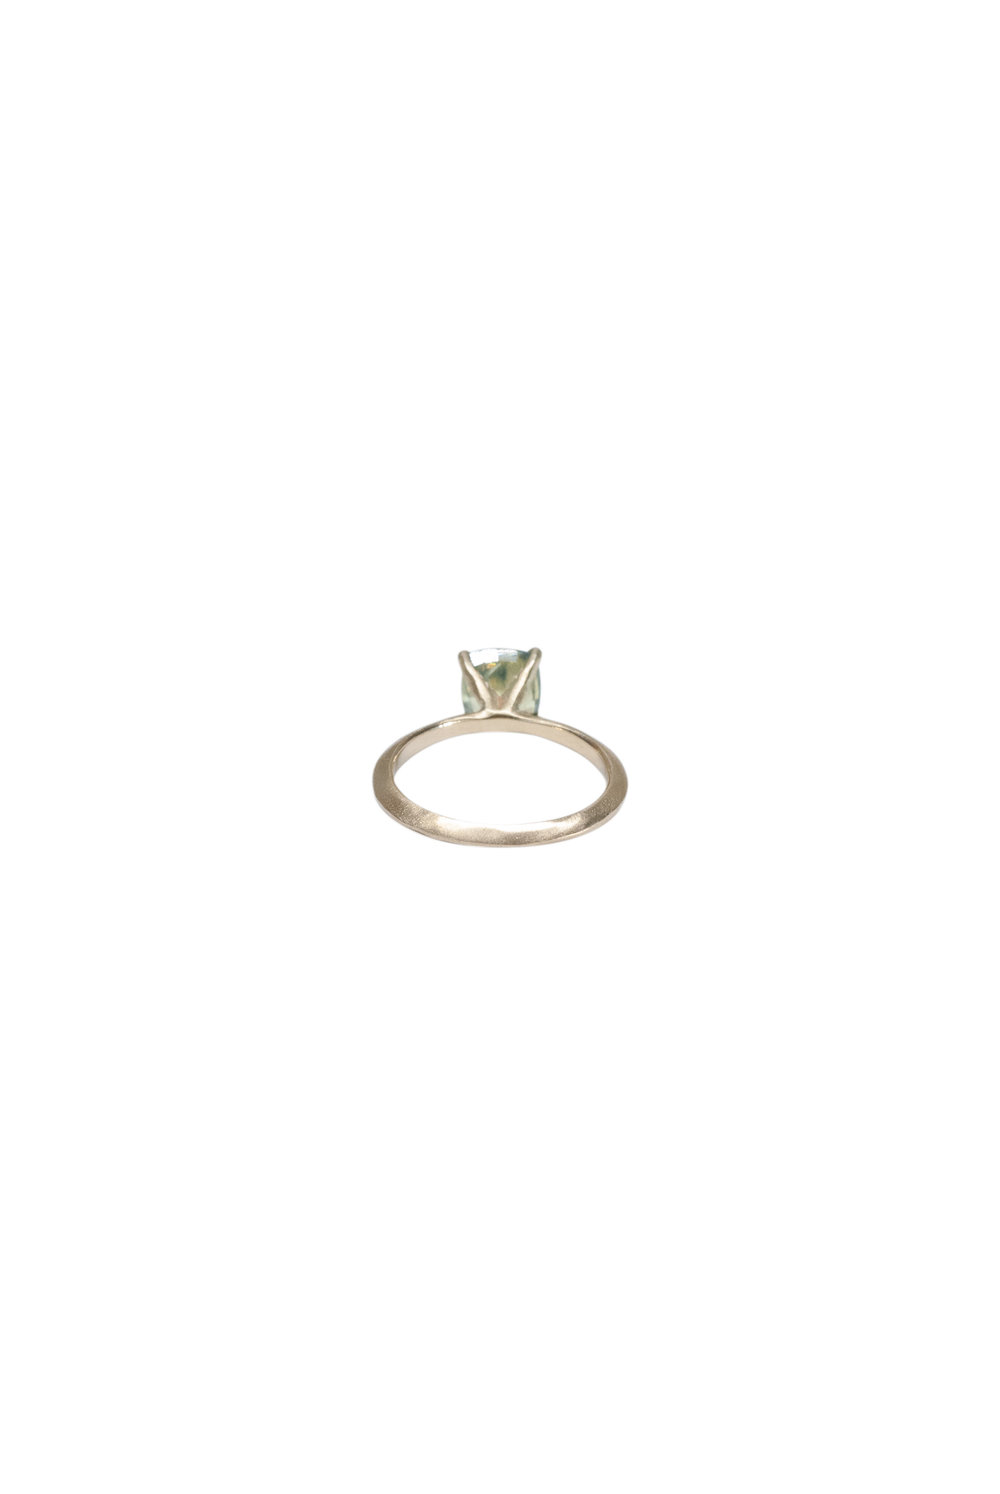 BR213- The Sage Solitaire 1.72CT (6).jpg